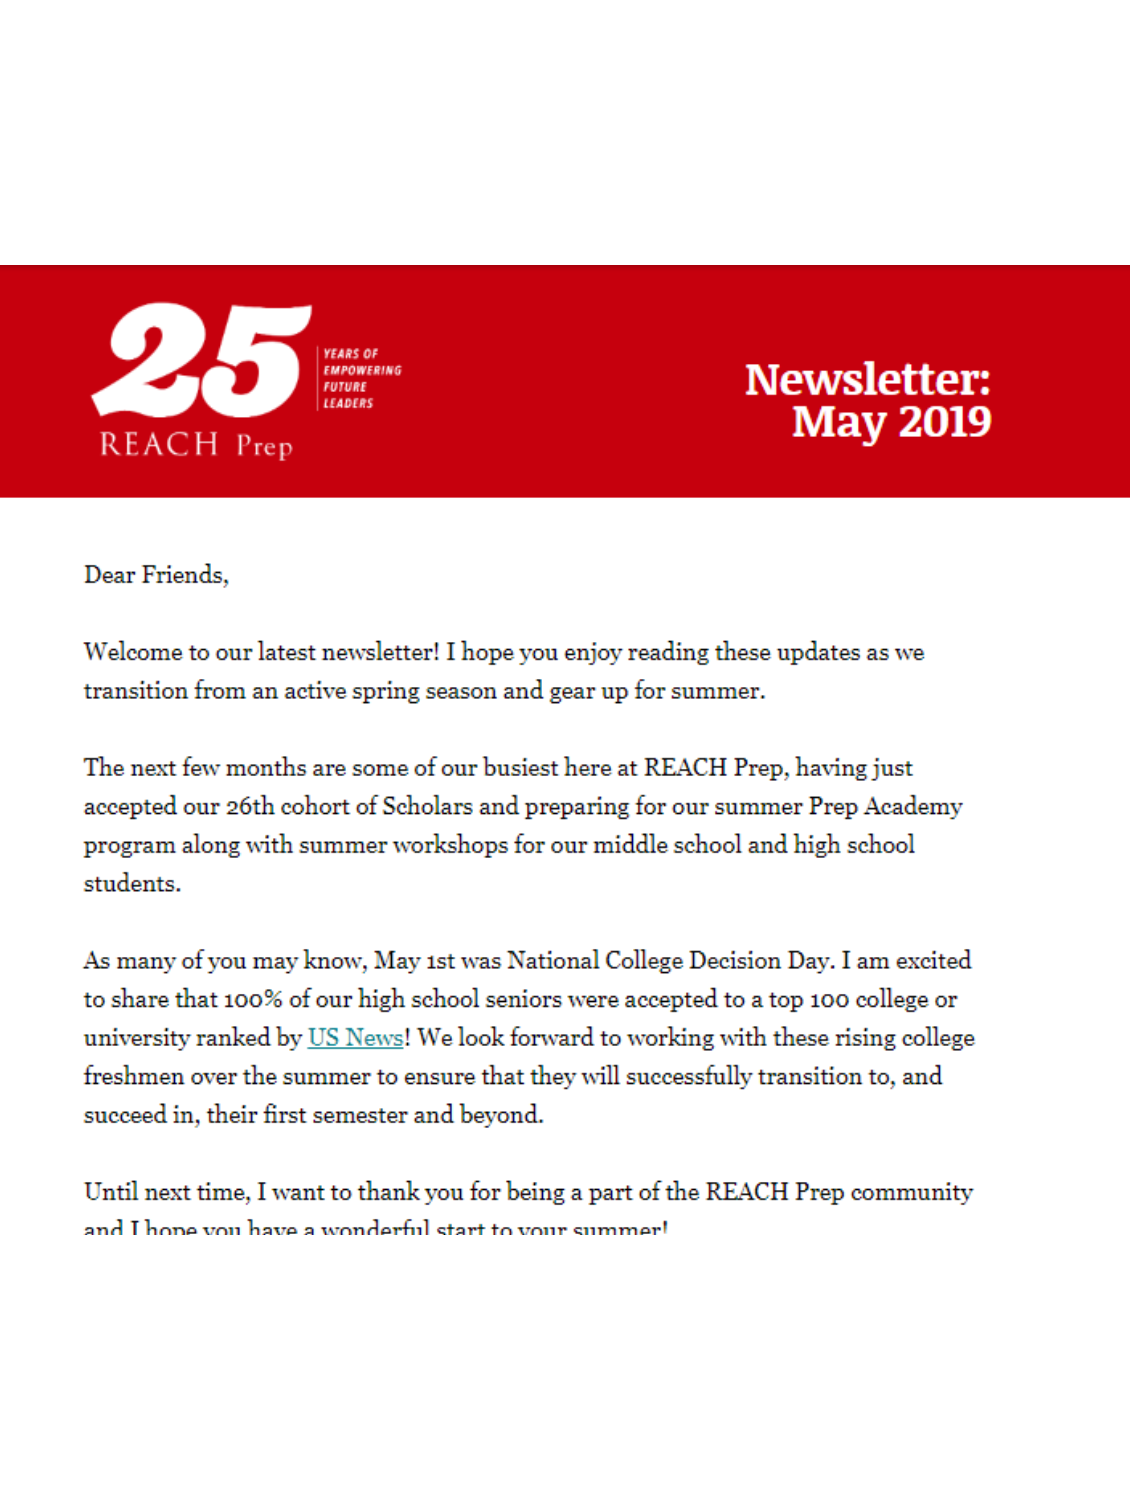 Newsletter: May 2019